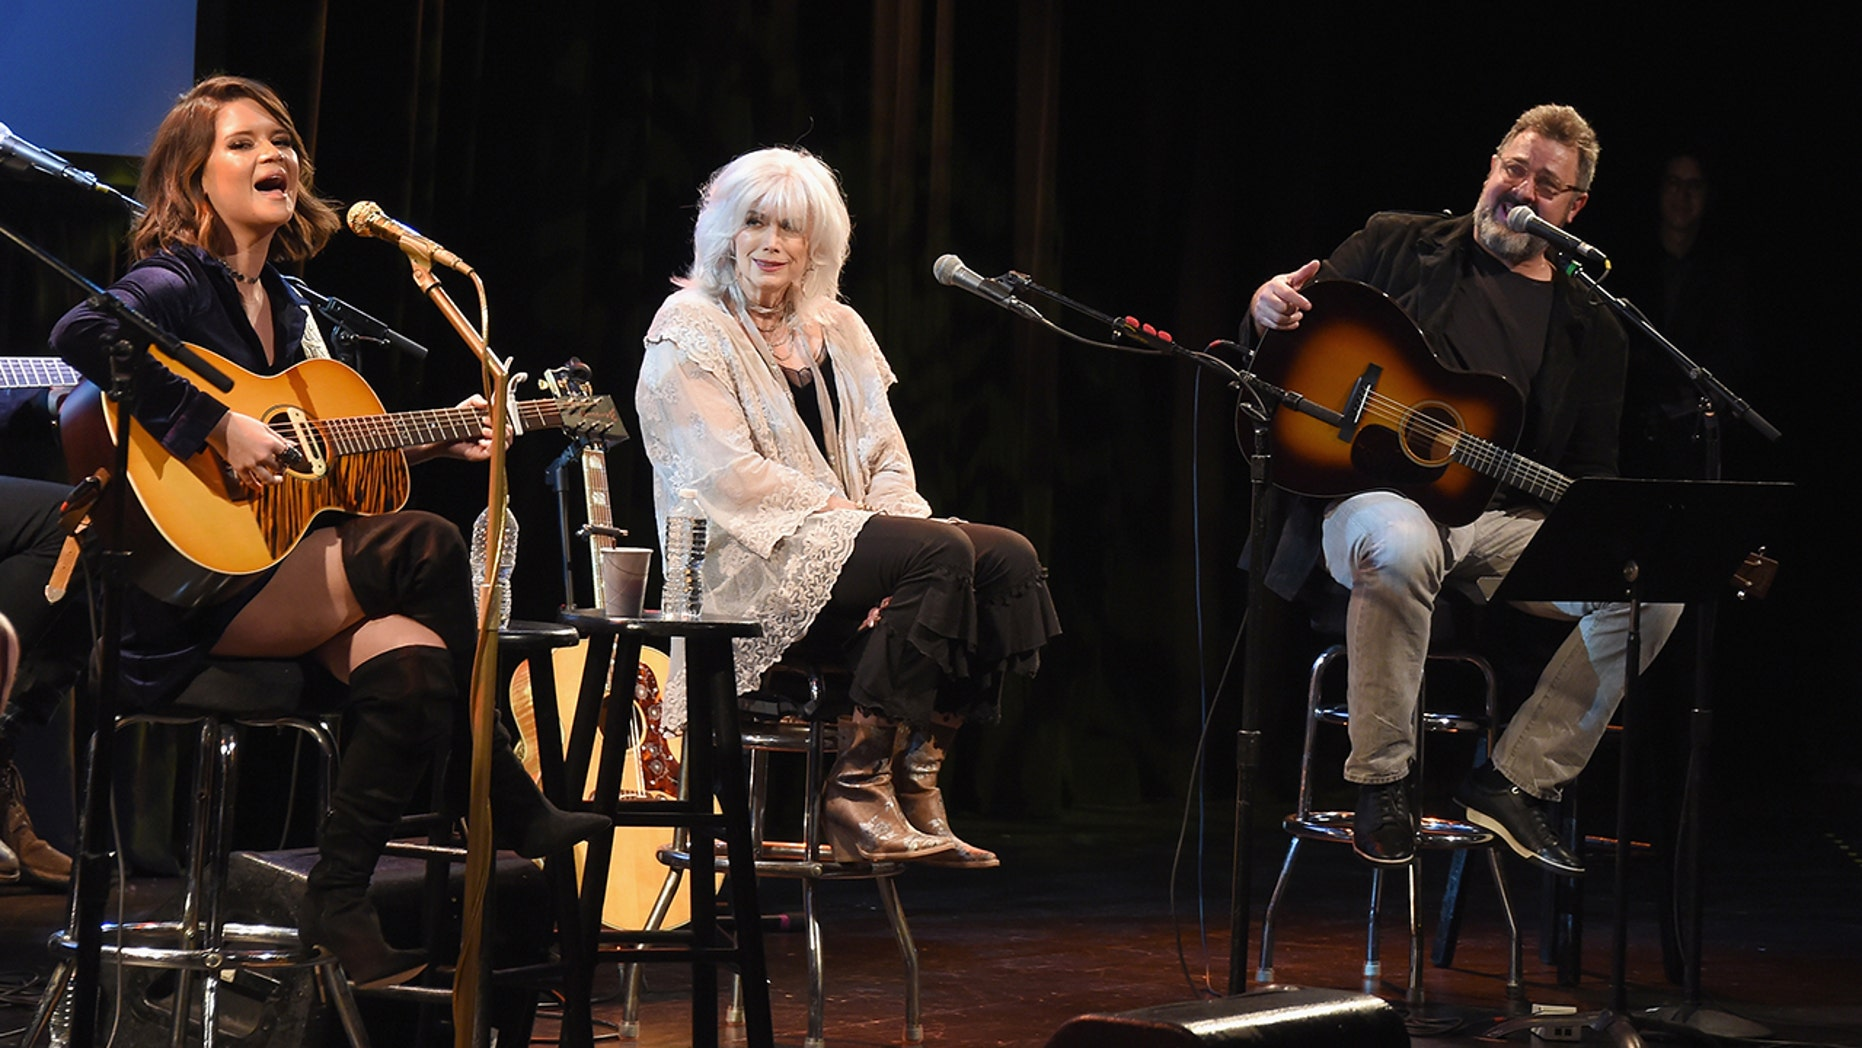 Musicians Maren Morris, Emmylou Harris and Vince Gill perform onstage at the Country Music Hall of Fame and Museum's 'All for the Hall' Benefit on February 13, 2018 in New York City.